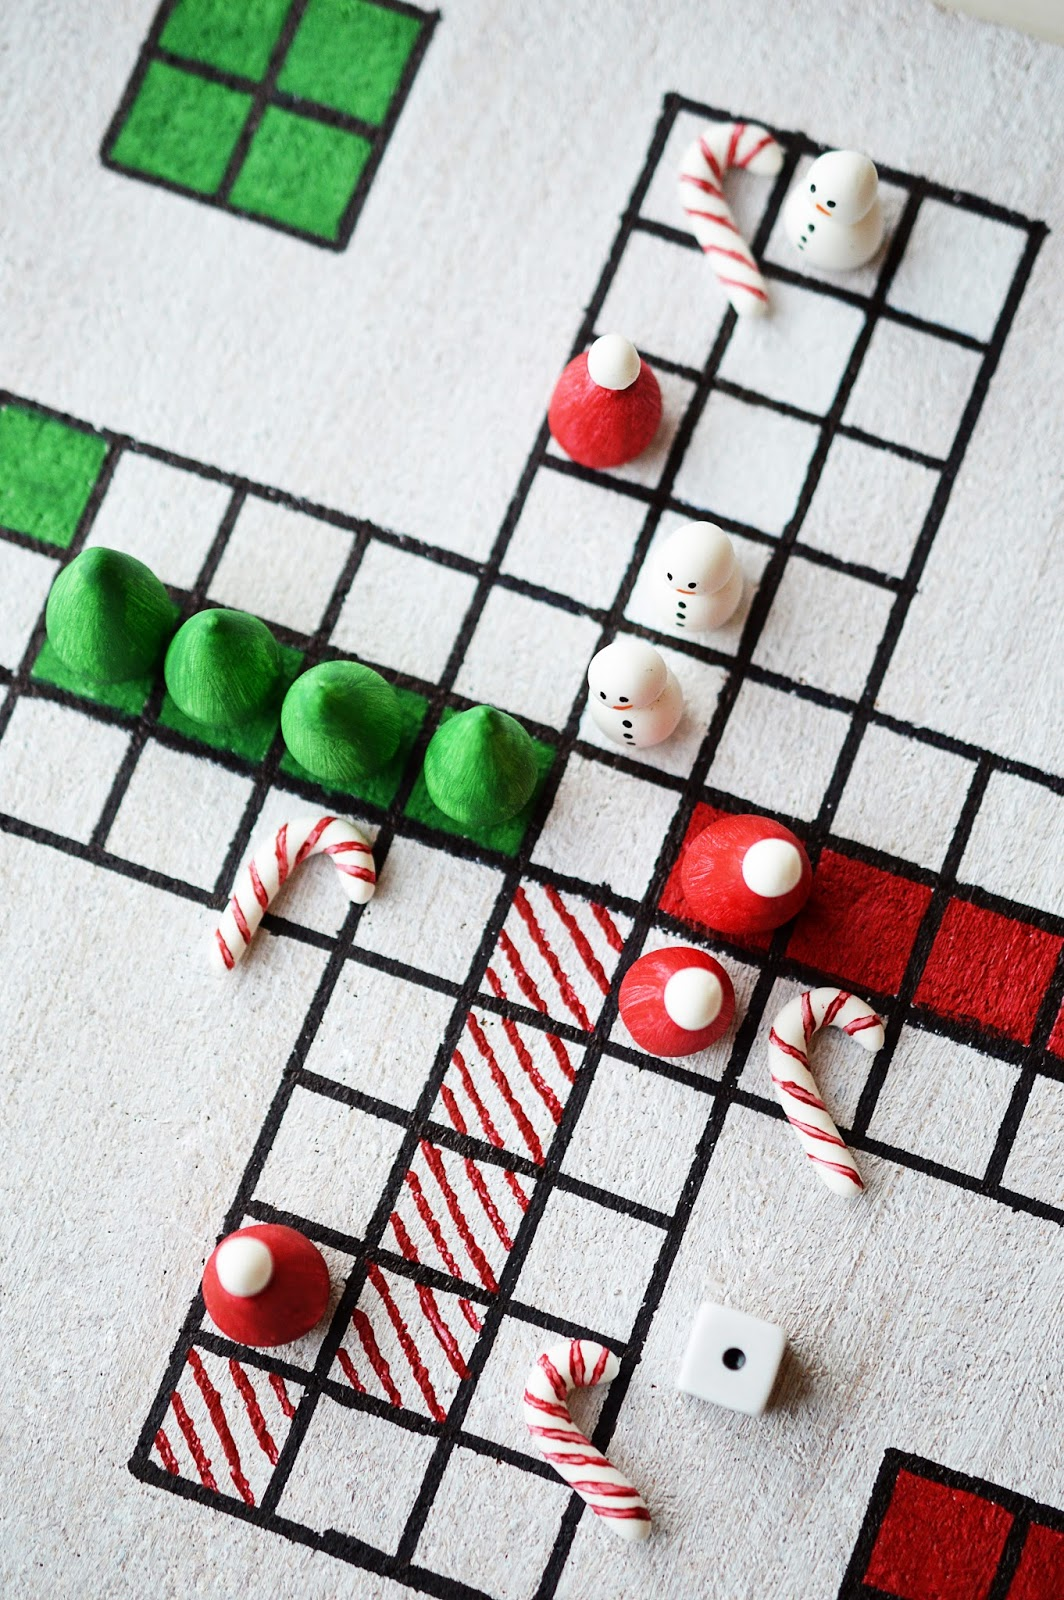 Game board colors - 27 Fun Christmas Games To Play With The Family Homemade Christmas Party Games